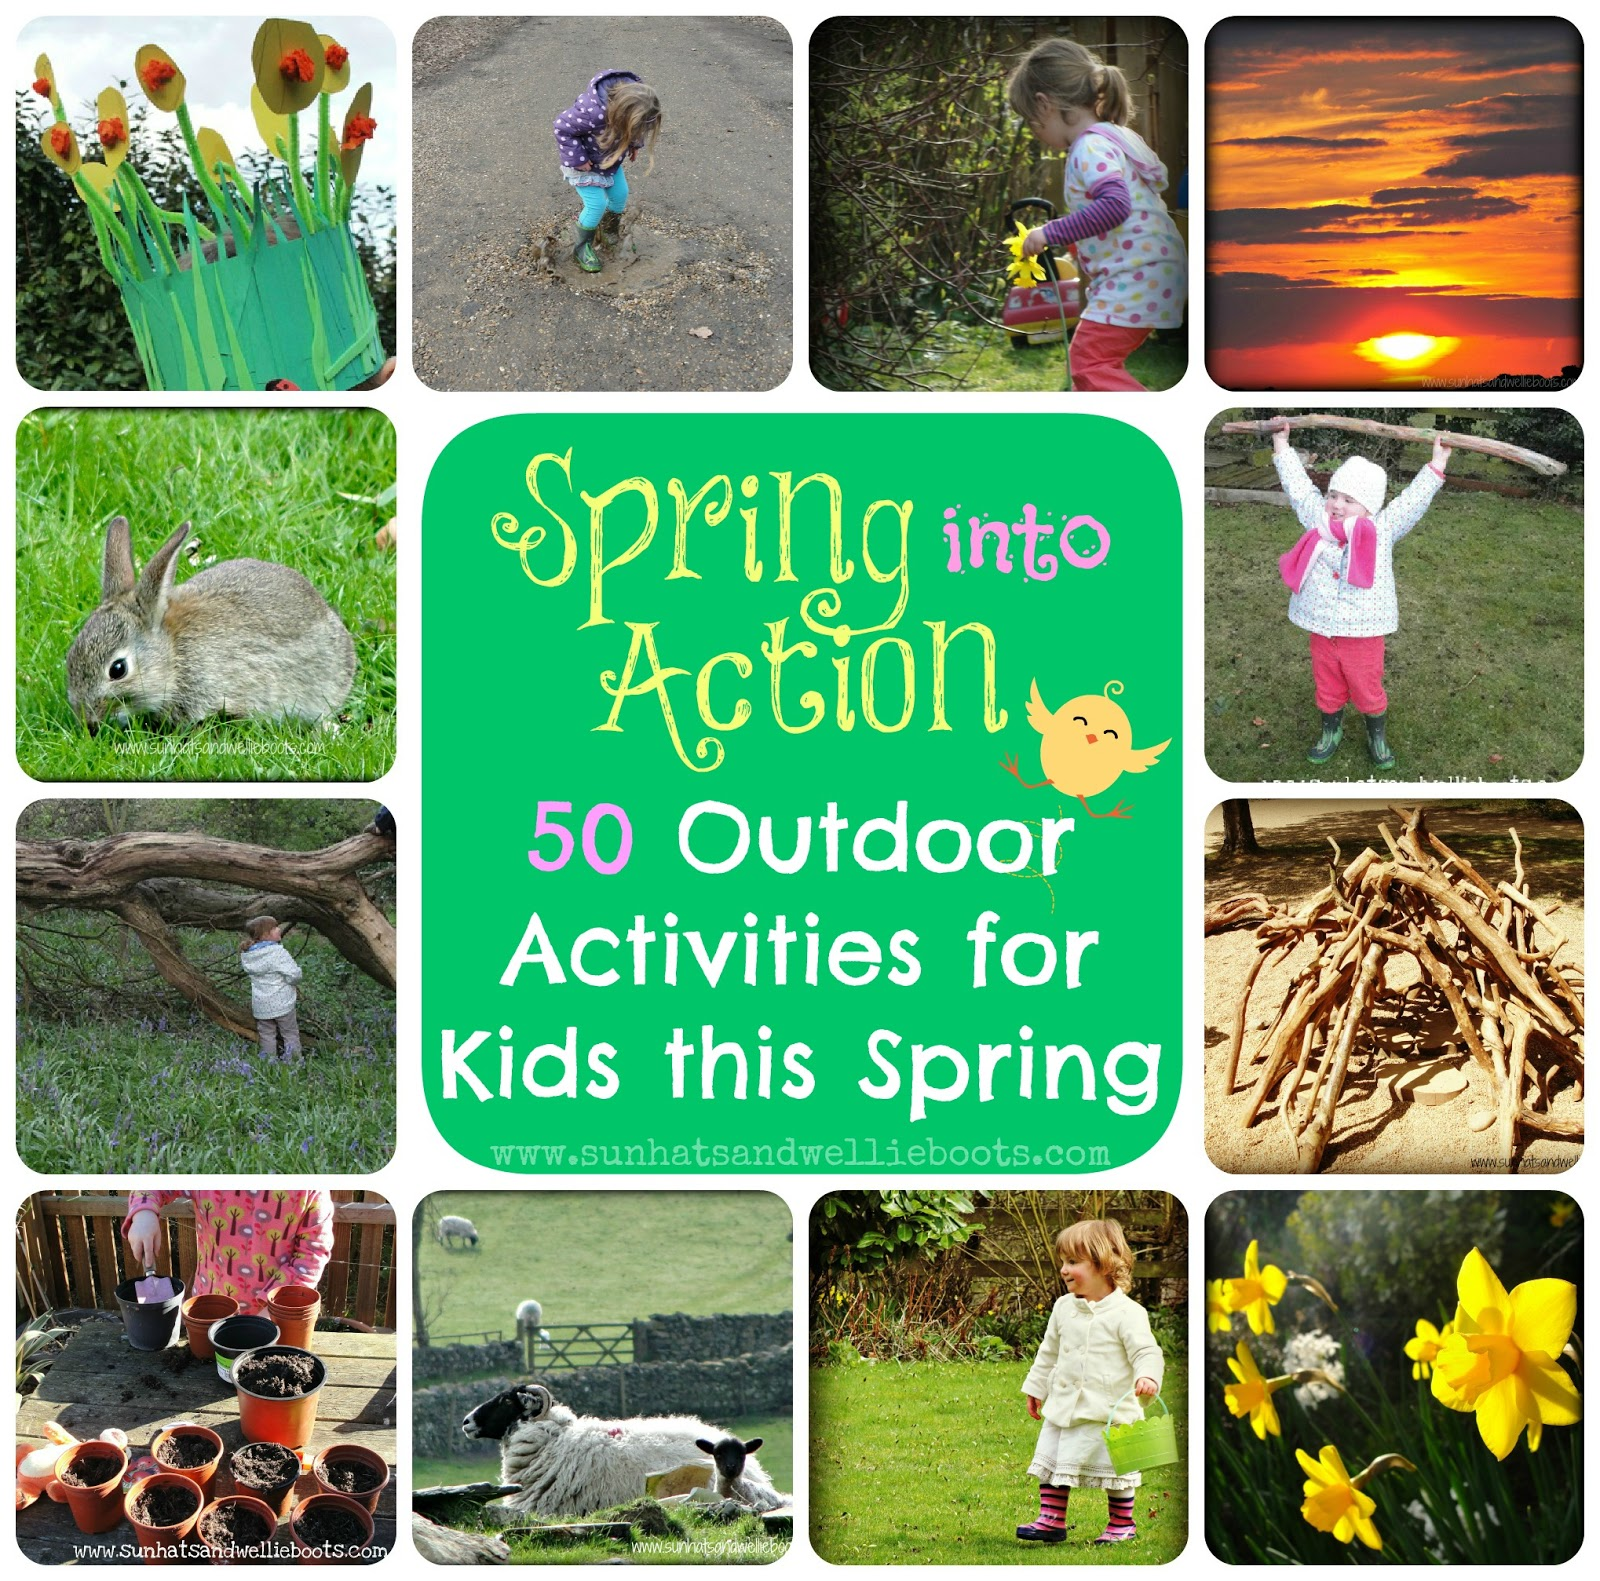 Sun Hats & Wellie Boots 50 Outdoor Activities for Kids this Spring